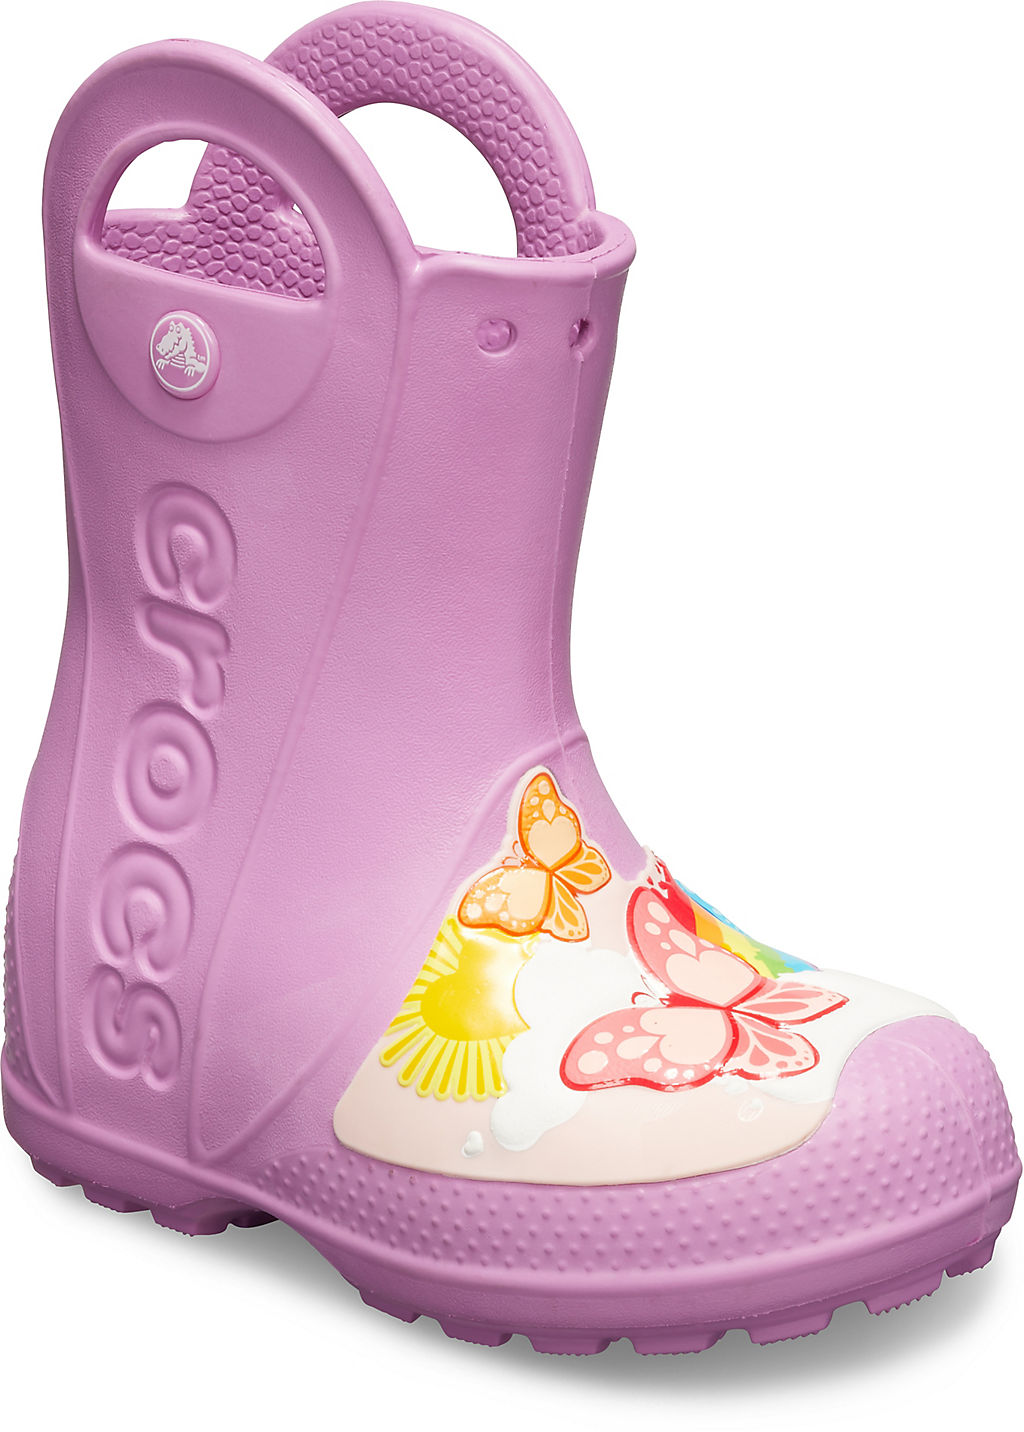 CrocsFL Butterfly Rain Boot K